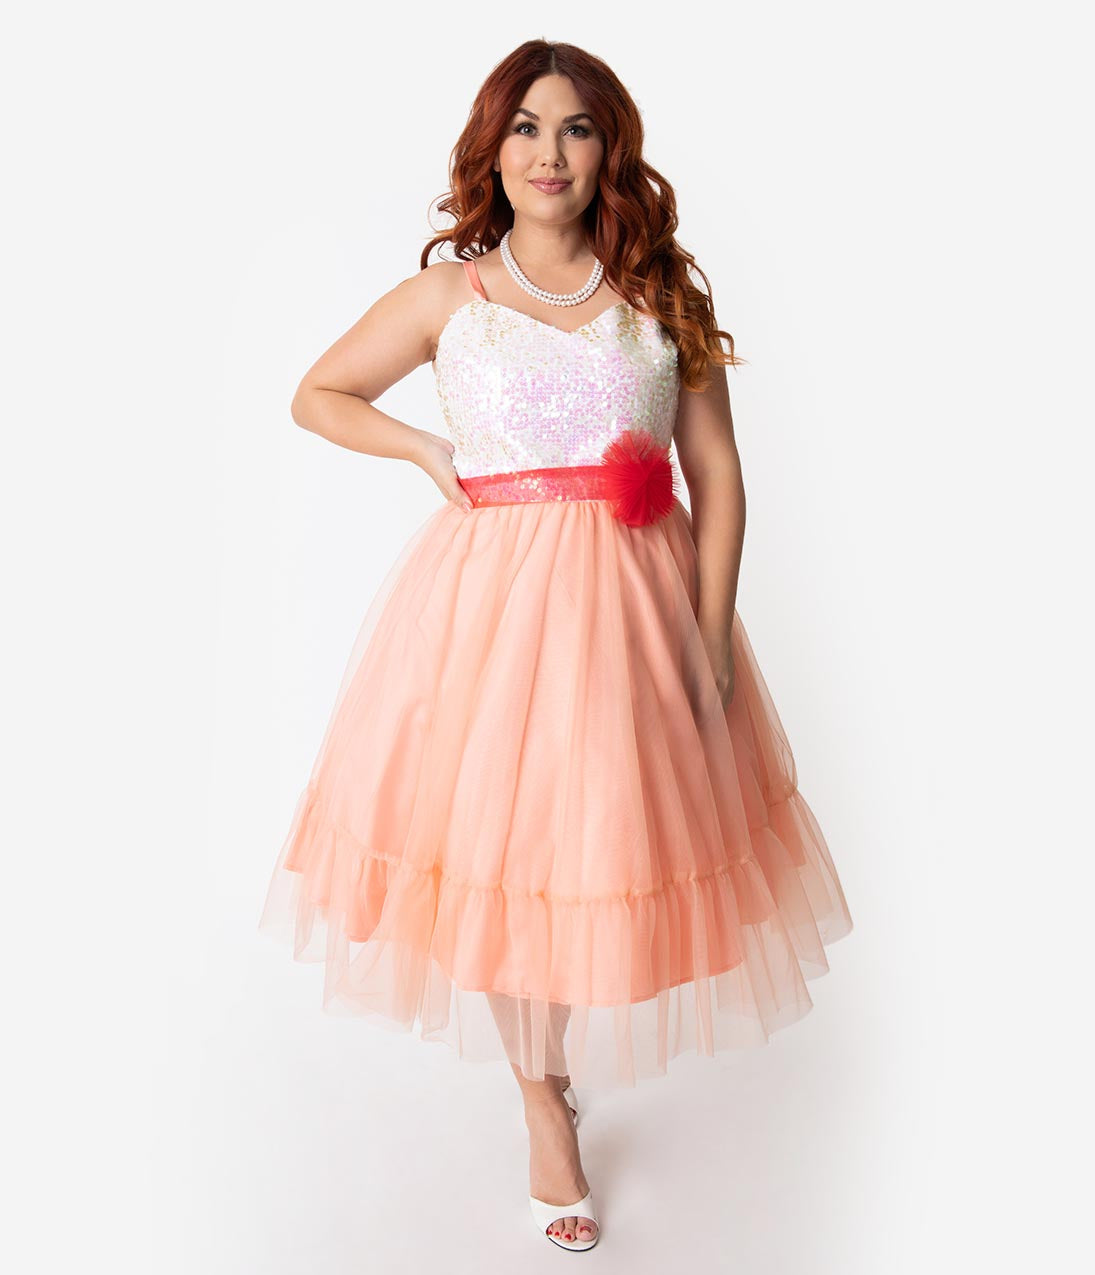 b4791ec19638 Barbie x Unique Vintage Plus Size Peaches N Cream Chiffon Dress